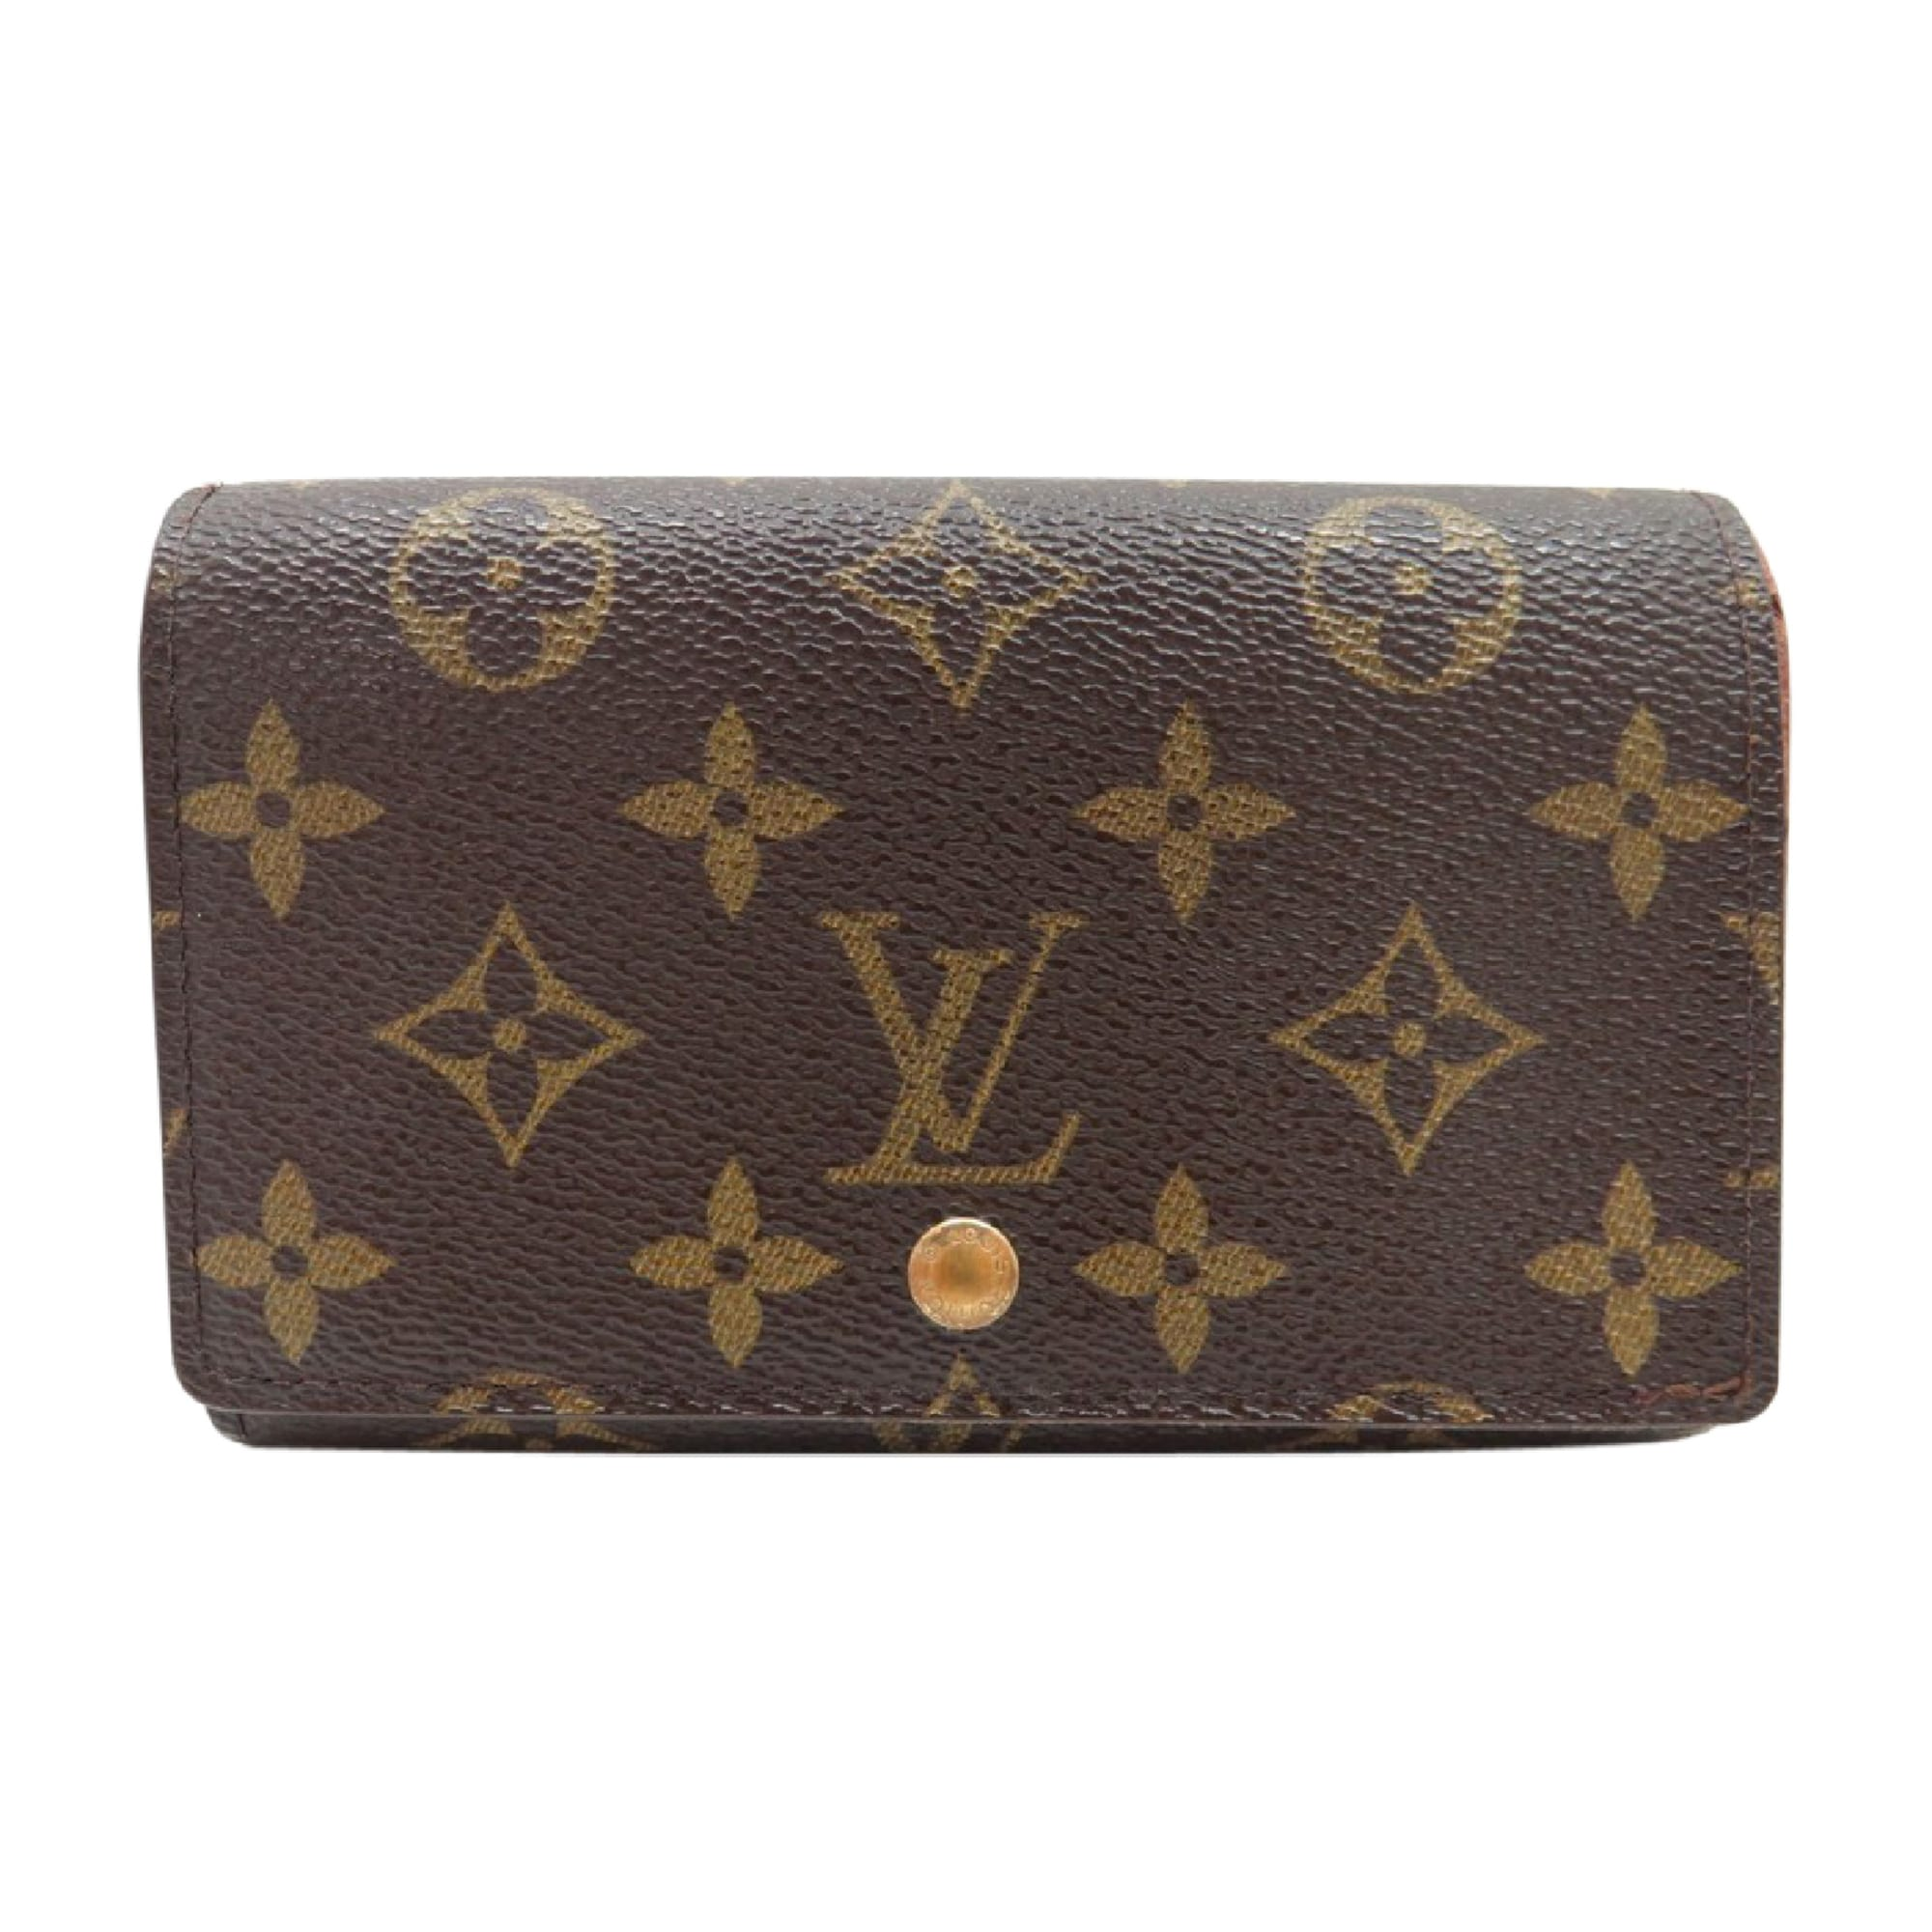 Portefeuille LOUIS VUITTON marron - 6730878 737eca8ad4d